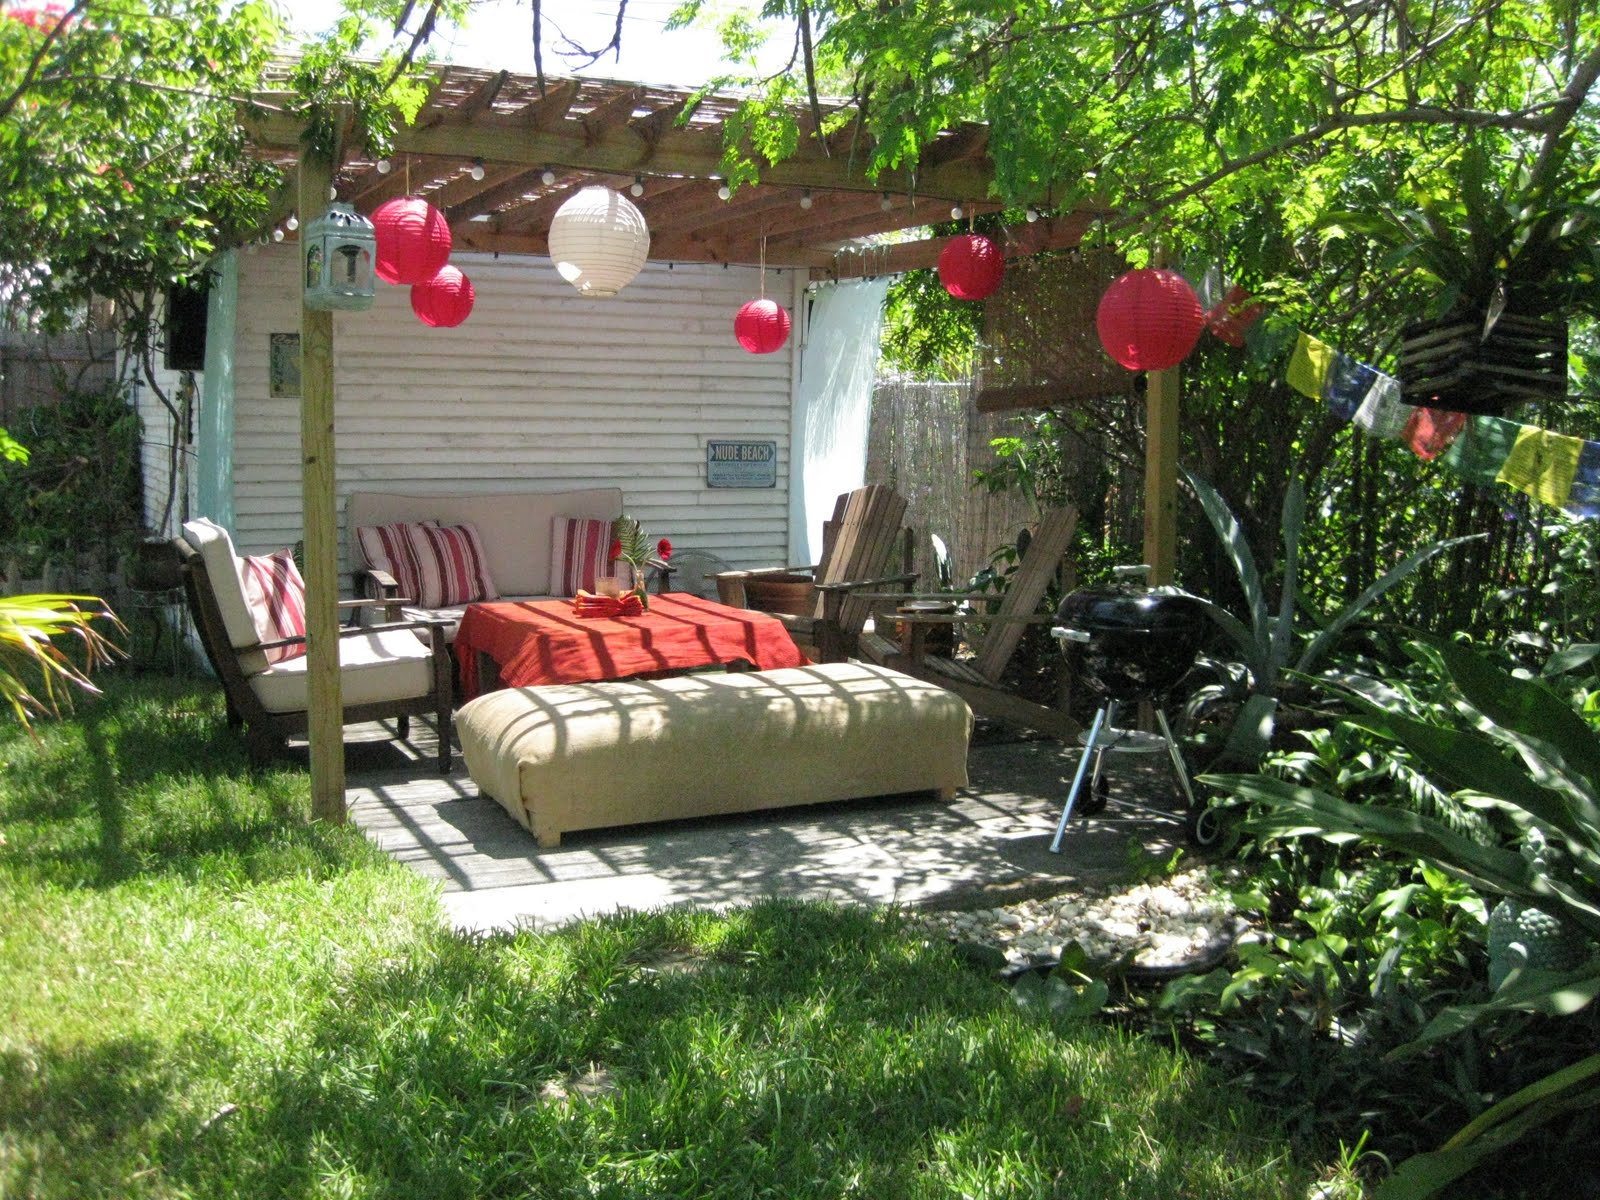 Dinner party a backyard barbeque for Backyard bbq decoration ideas